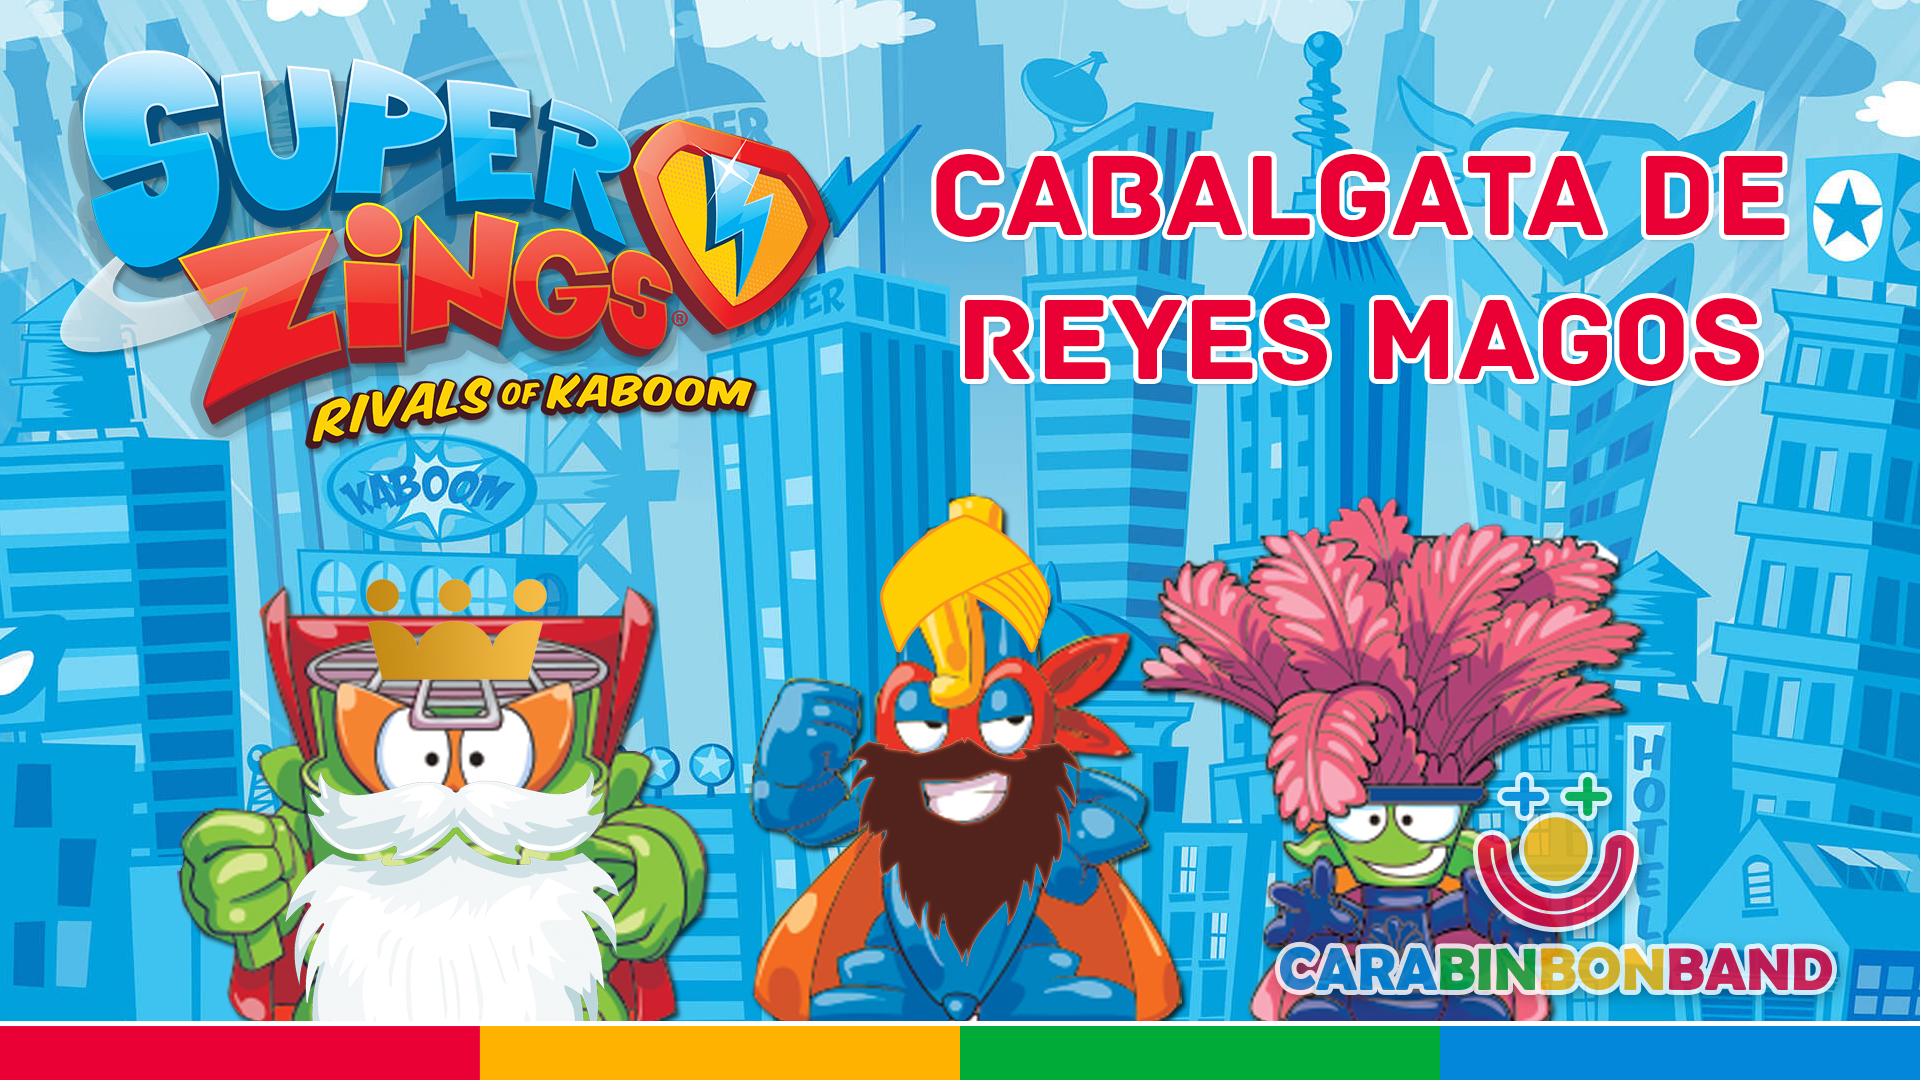 SUPERZINGS - The Magi arrive in Kaboom City